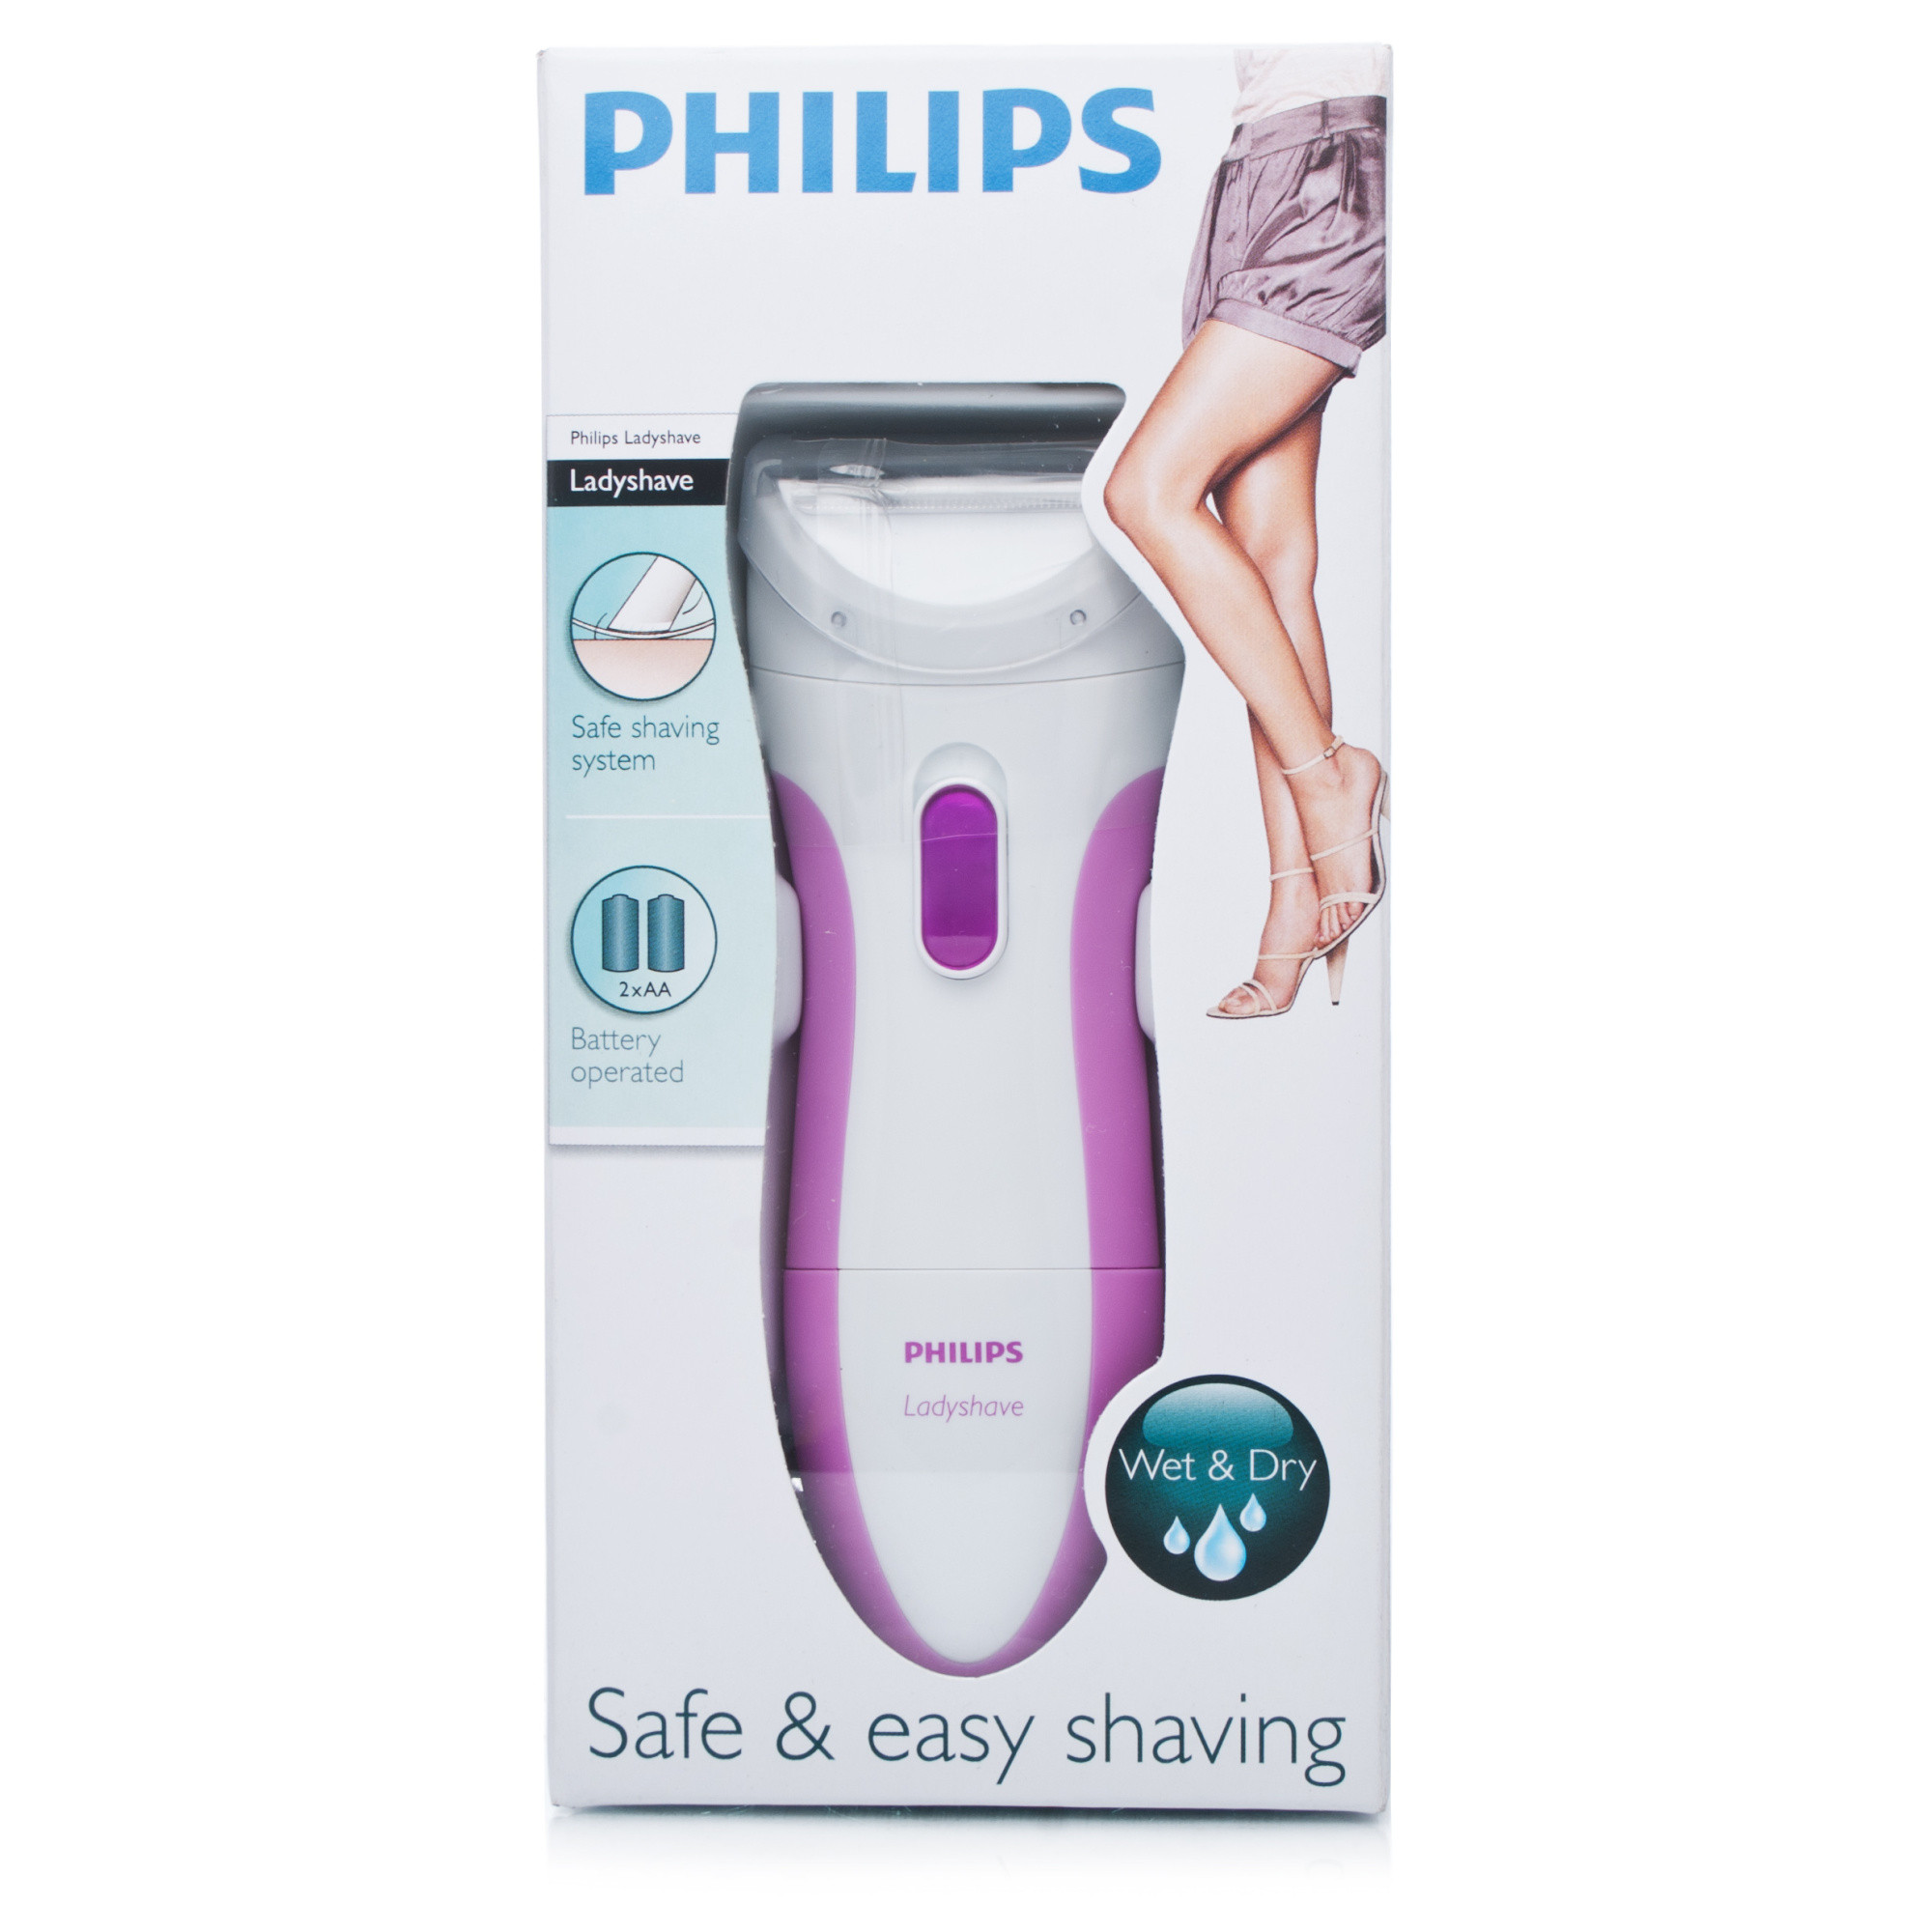 Philips HP6341 Ladyshave Wet and Dry